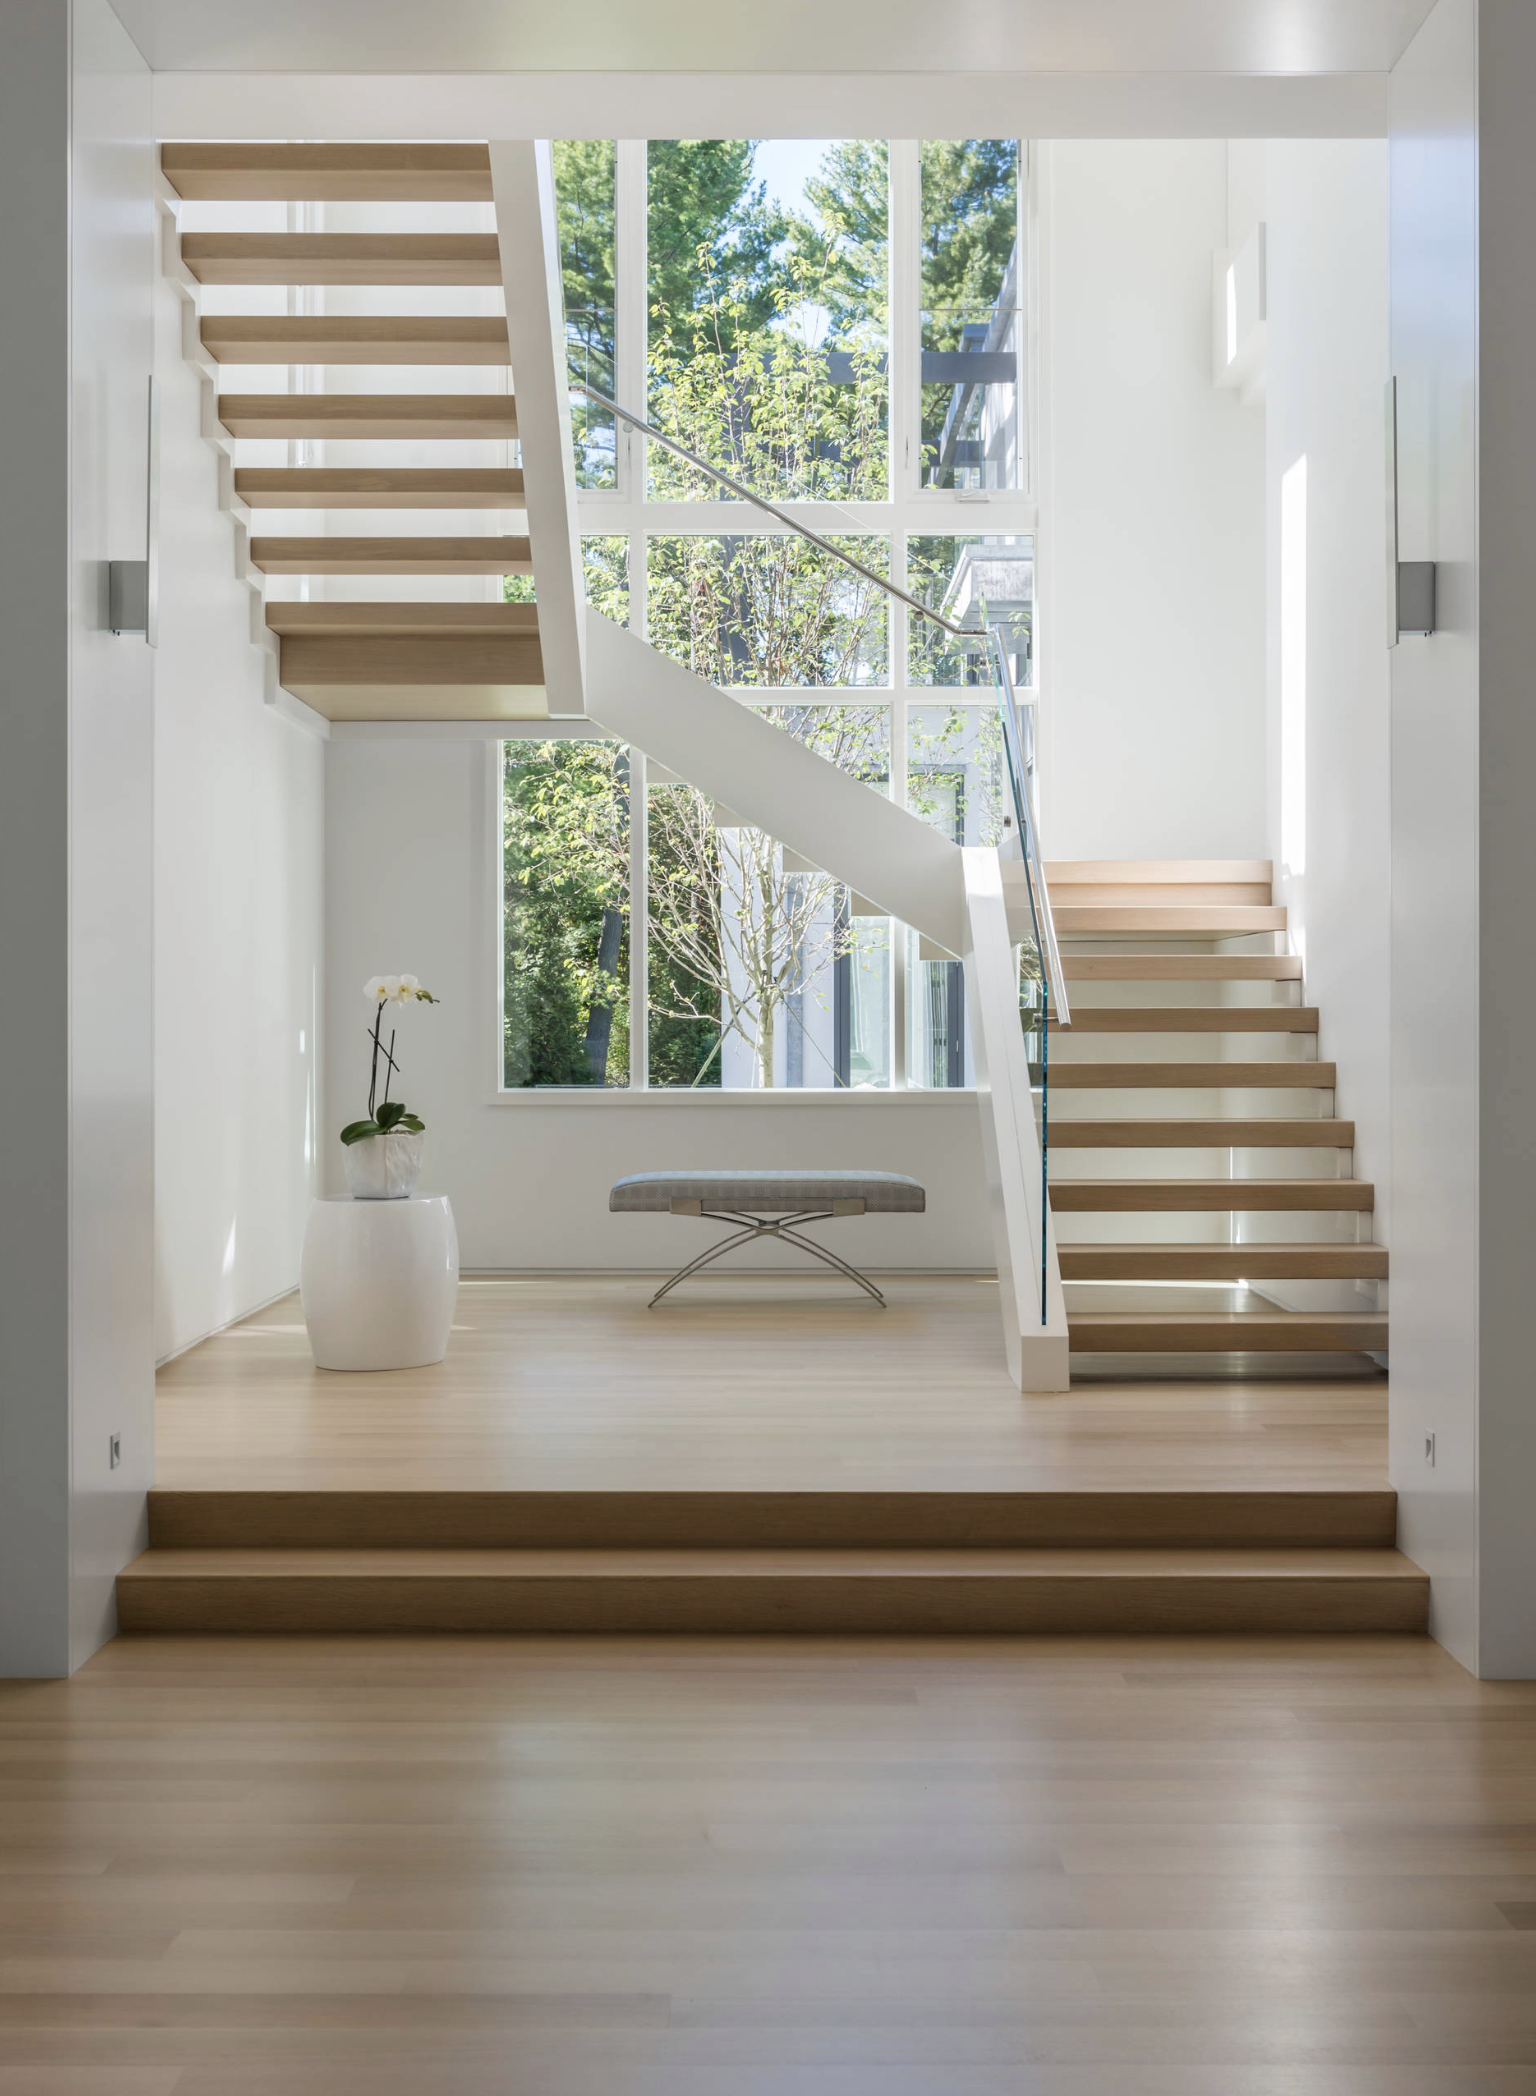 Beautiful White Modern Staircase In Weston Ma Custom Built By The Lagasse Group Home Stairs Design Stairs Design Interior Stairs Design Modern